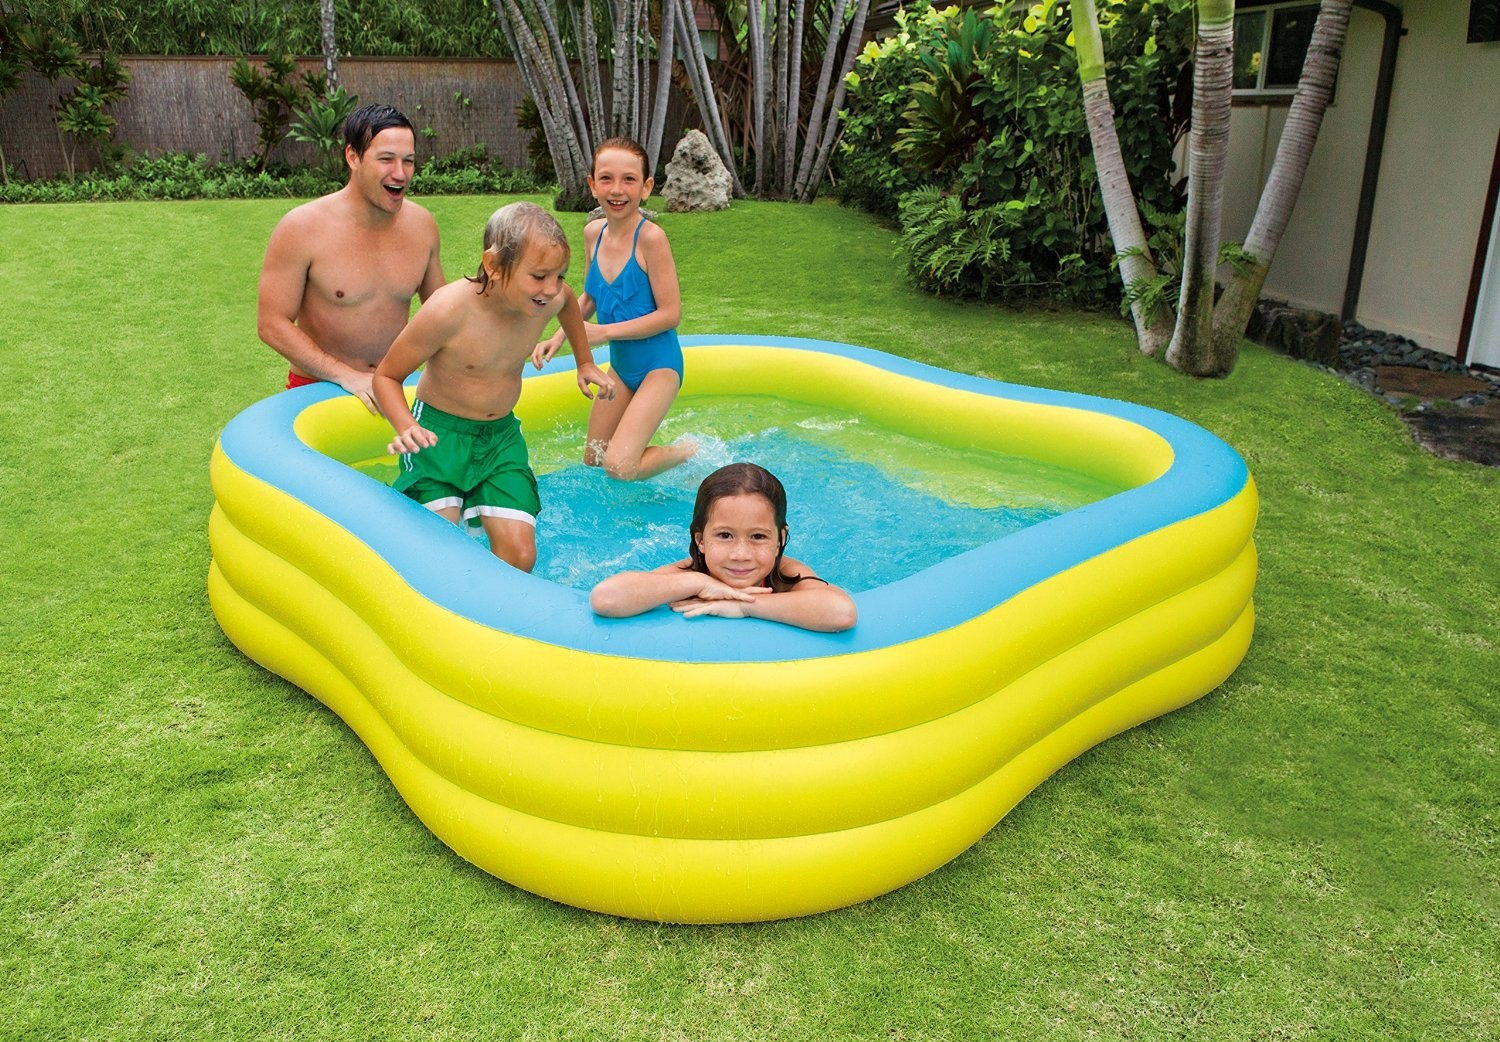 Piscina familiar hinchable forma cuadrada 229 x 229 x 56 for Piscina hinchable cuadrada